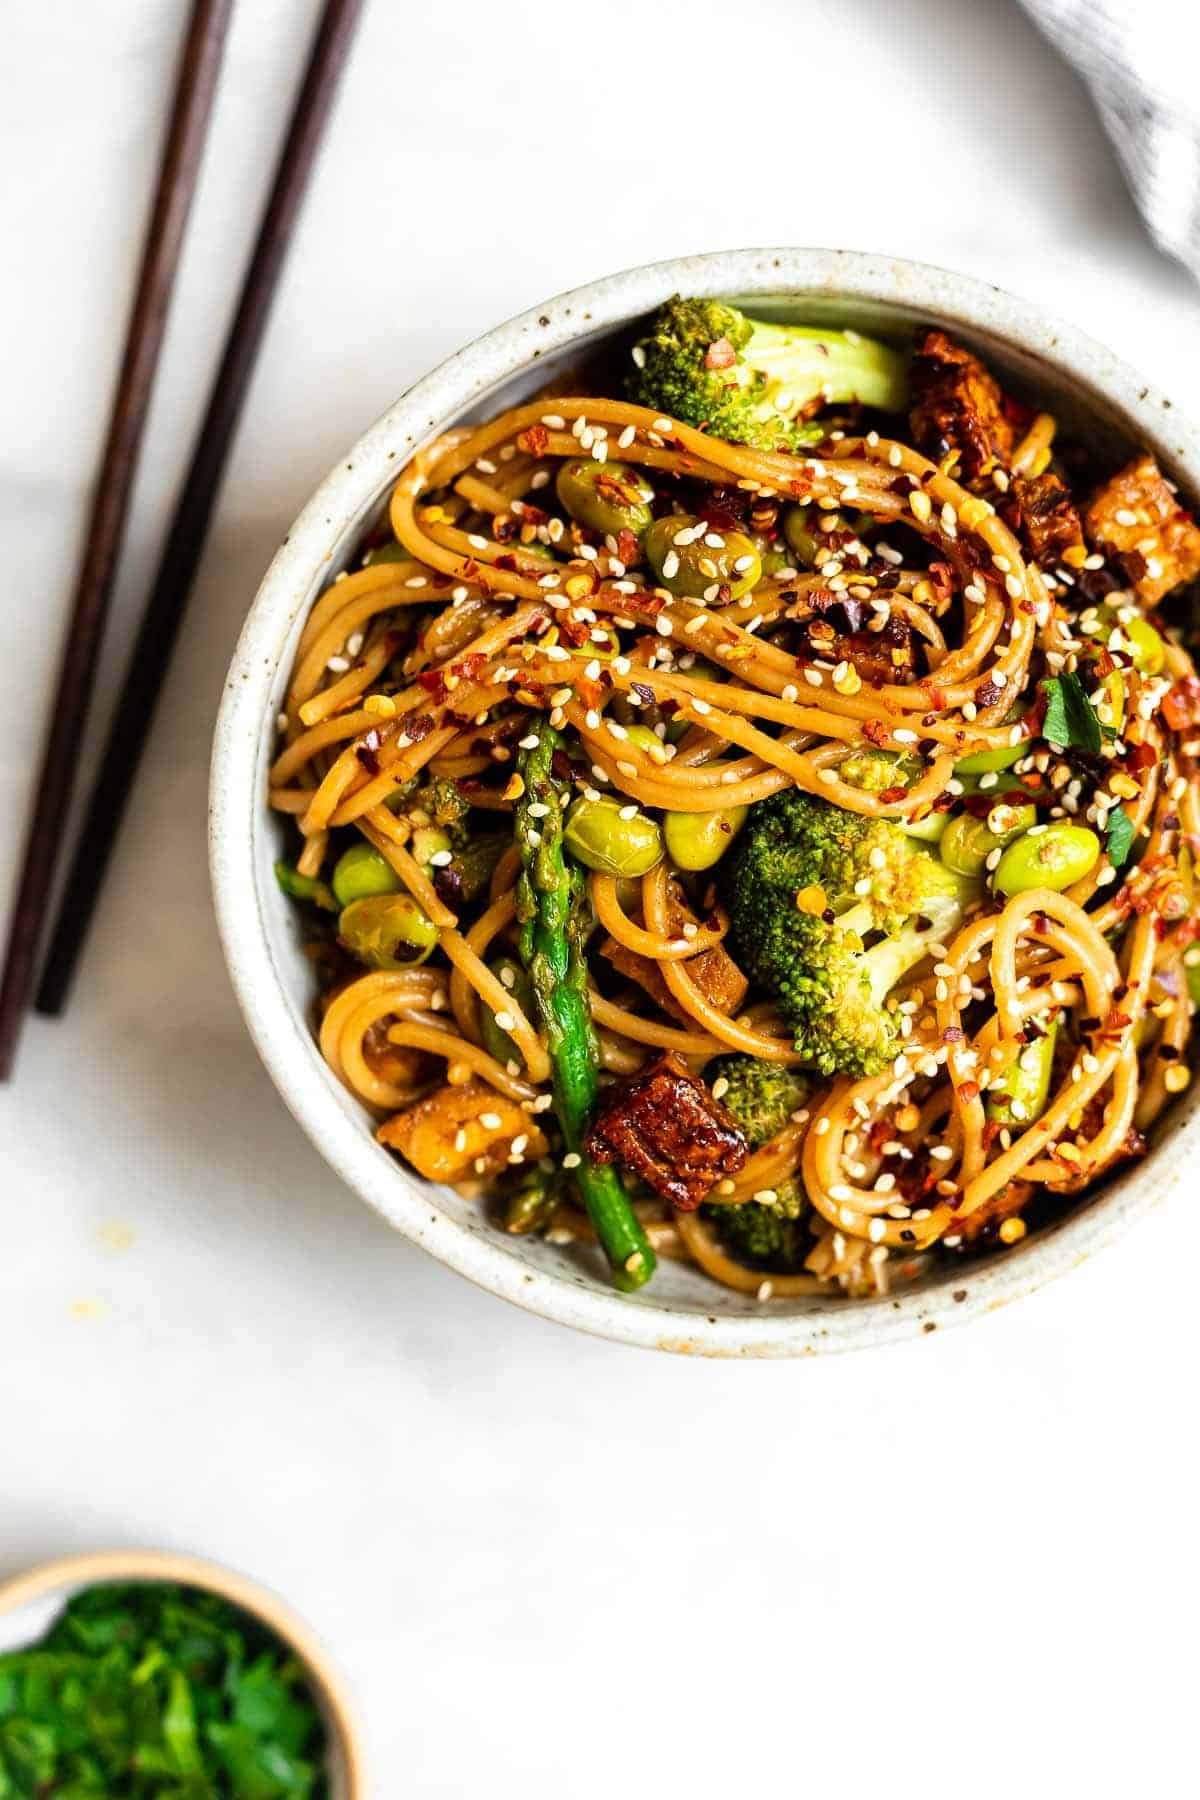 stir fry noodles with broccoli and tofu